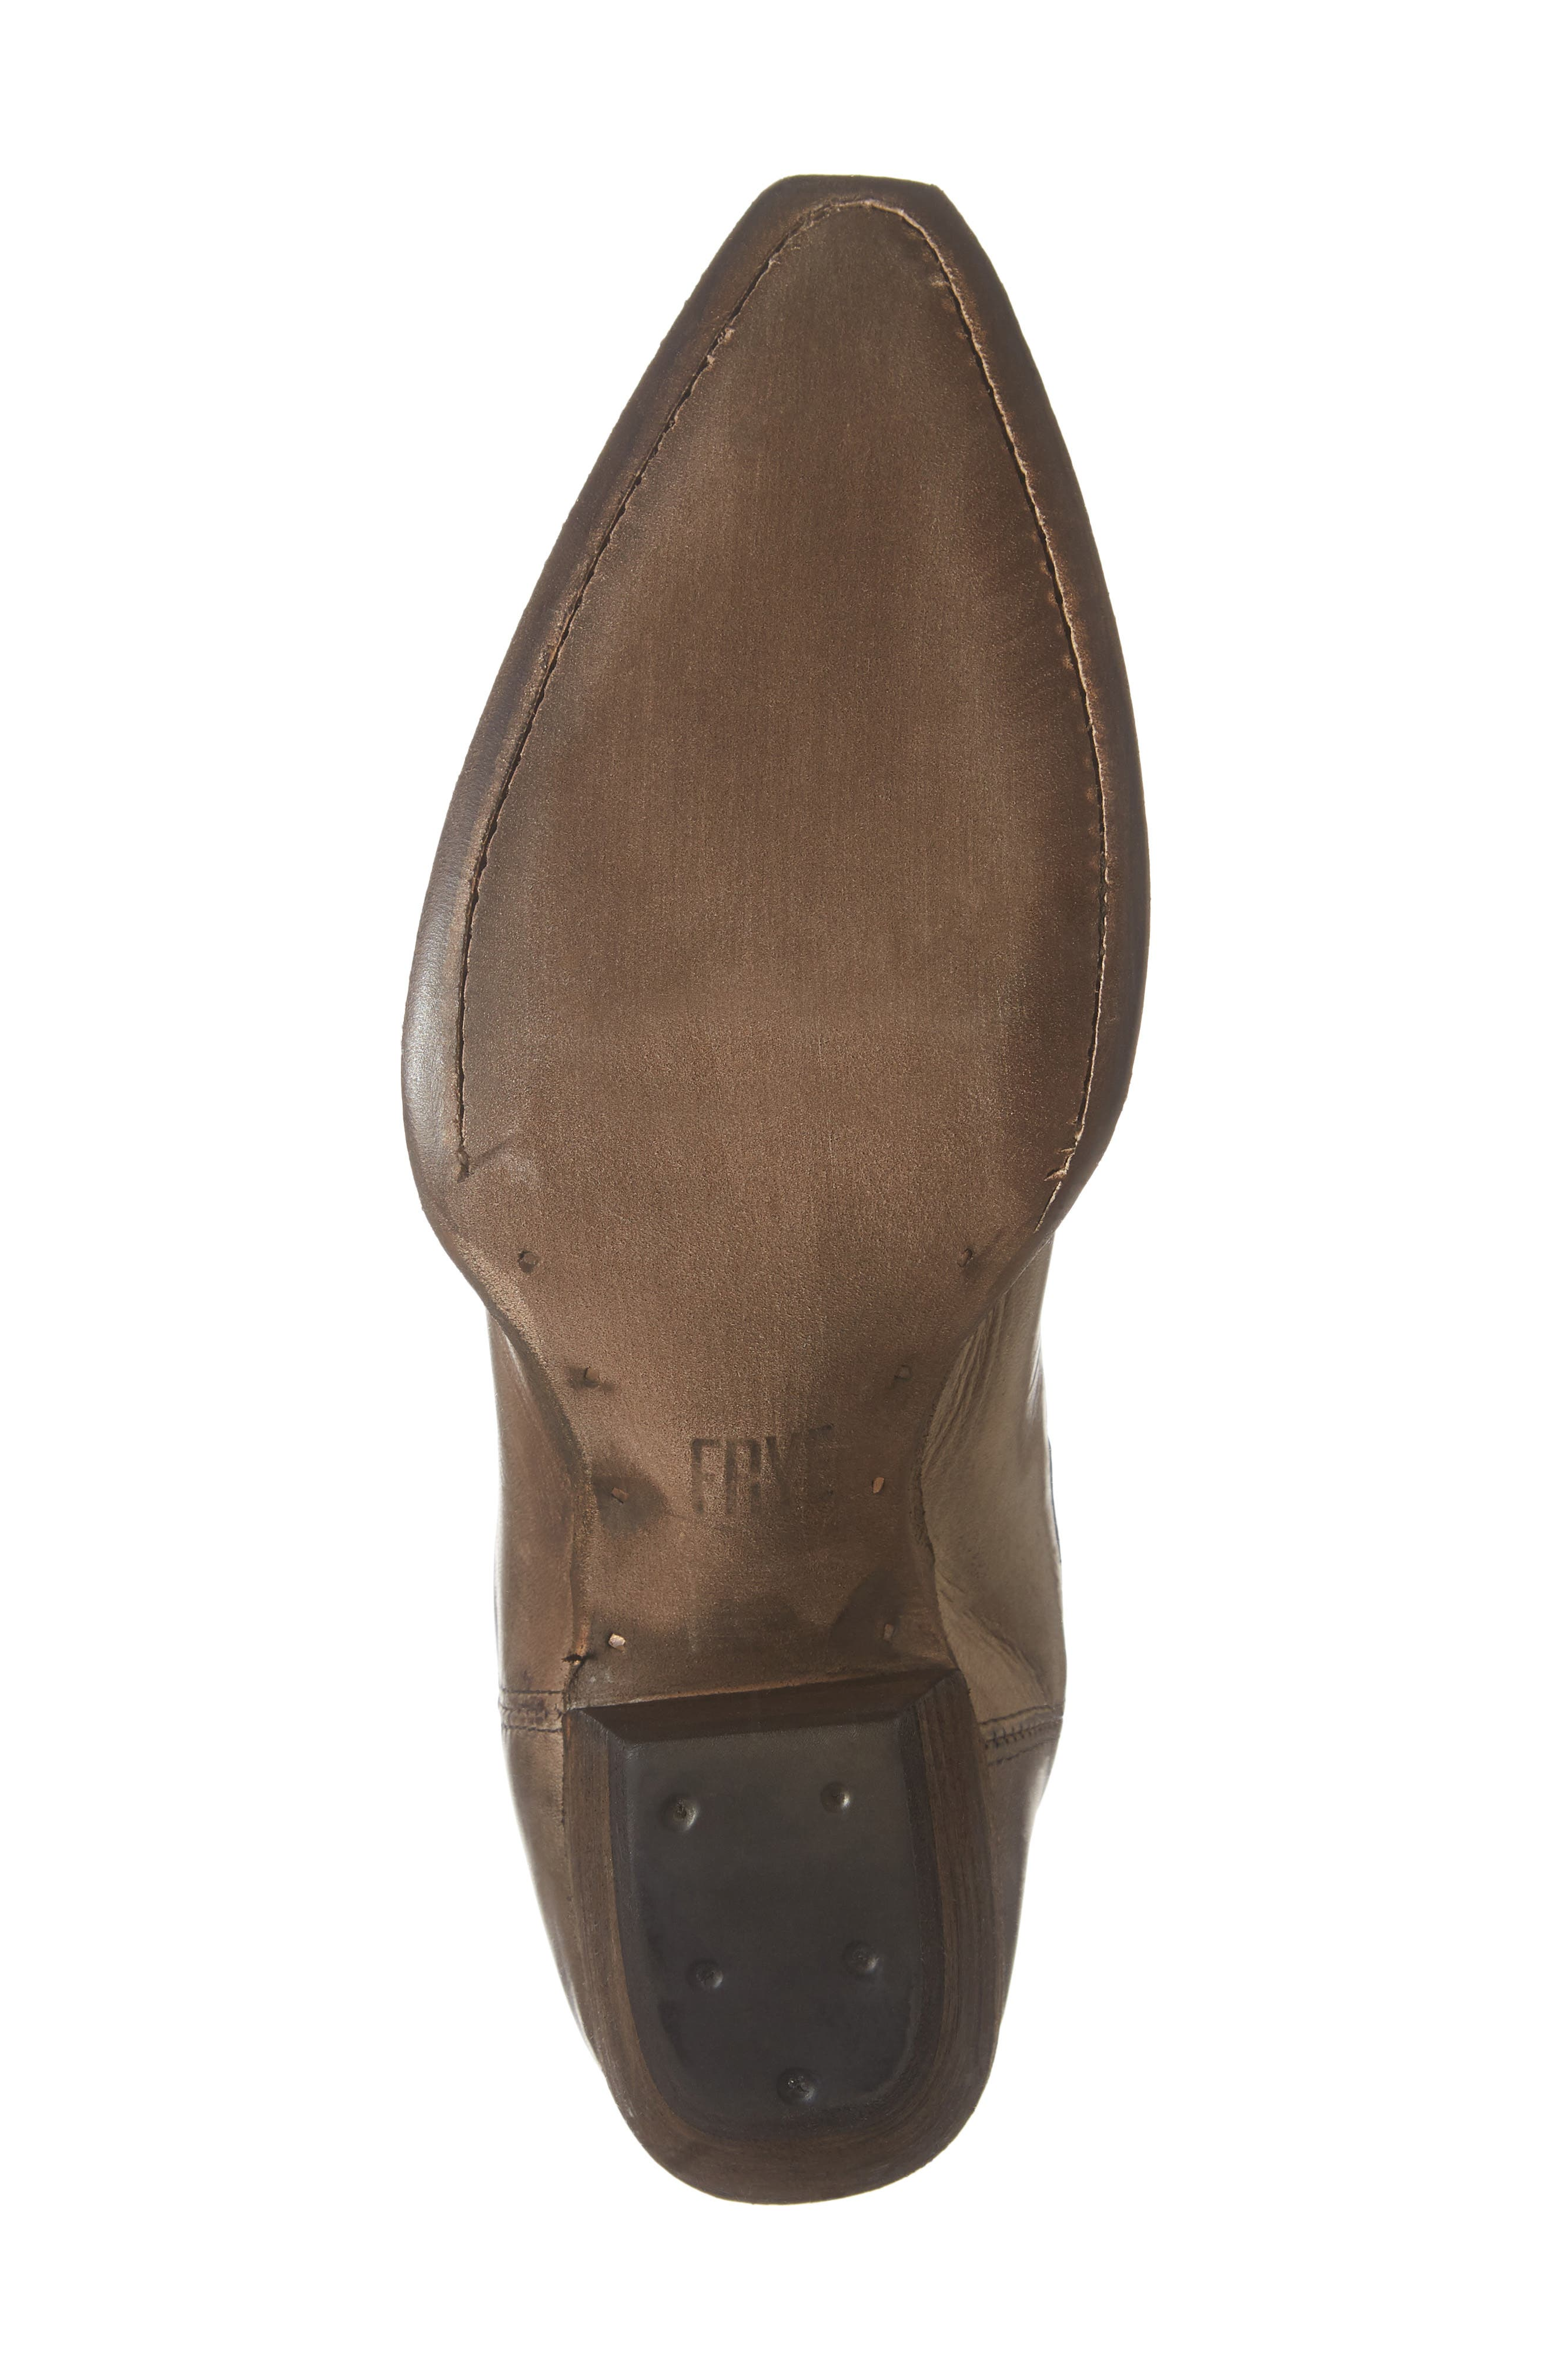 FRYE, Sacha Western Bootie, Alternate thumbnail 6, color, STONE LEATHER